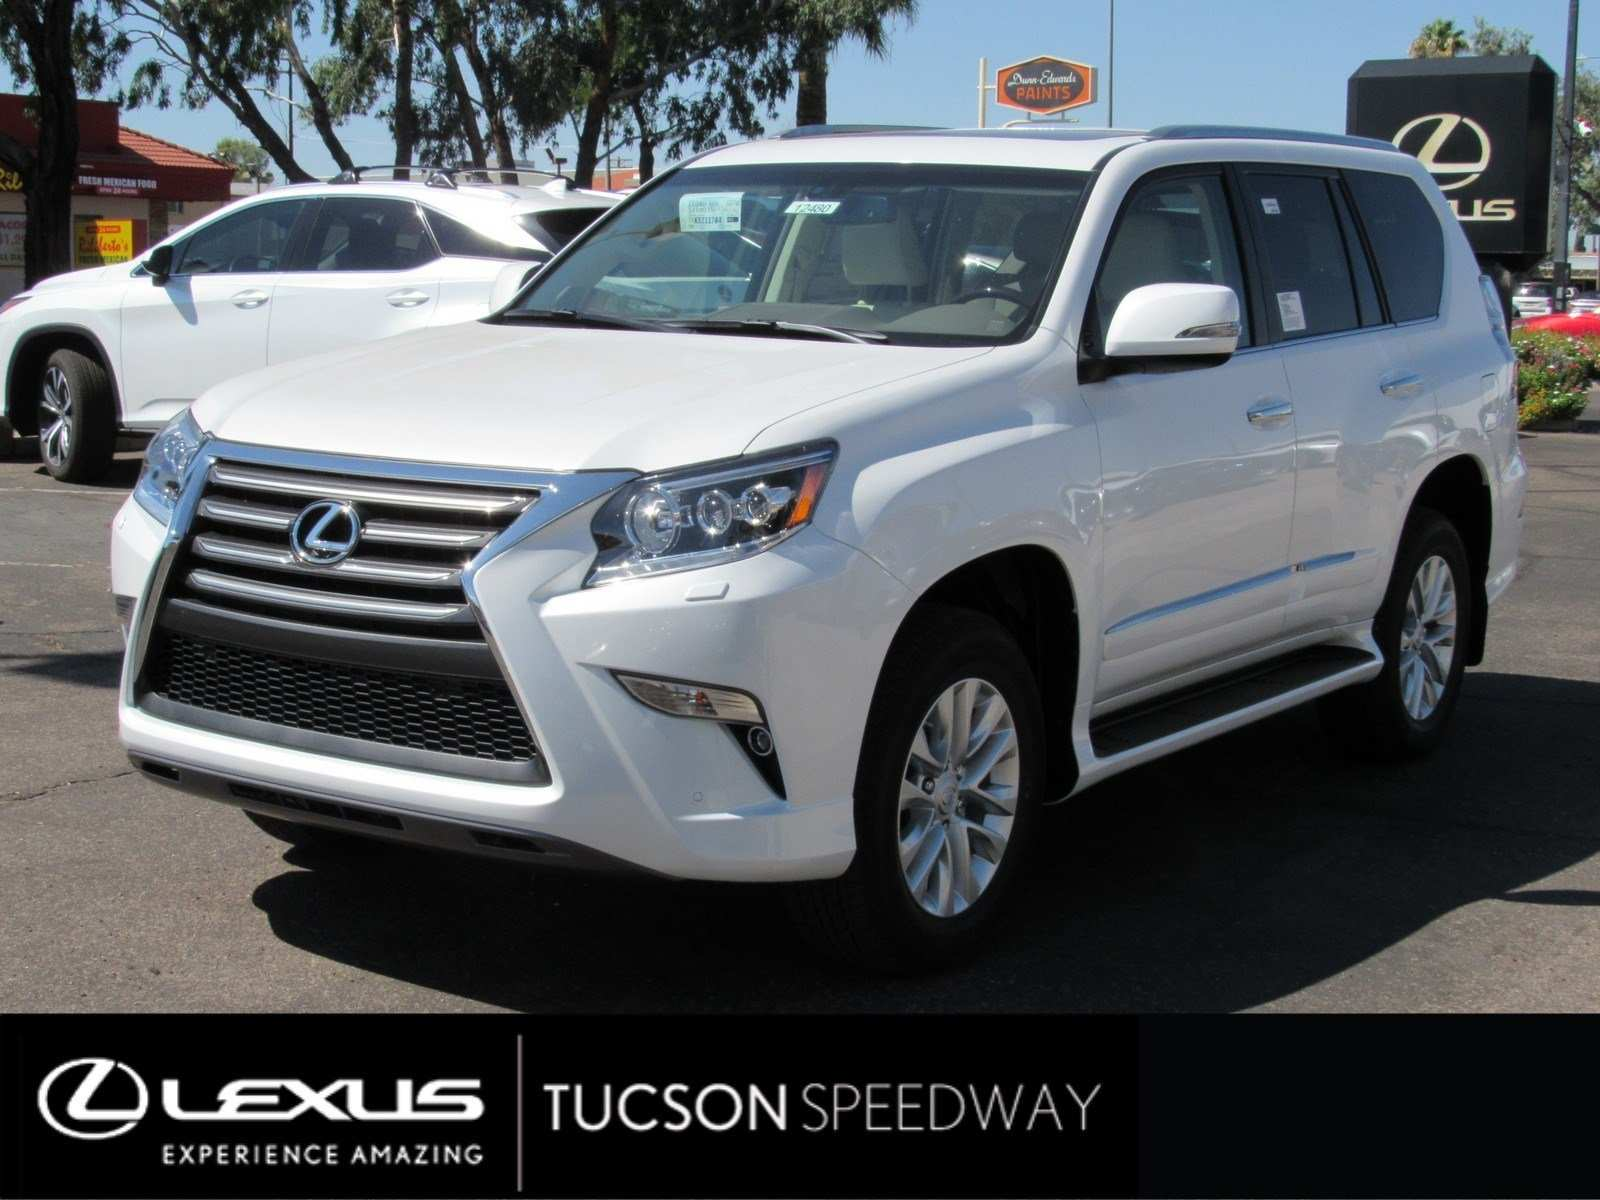 49 New 2019 Lexus Gx 460 Prices by 2019 Lexus Gx 460